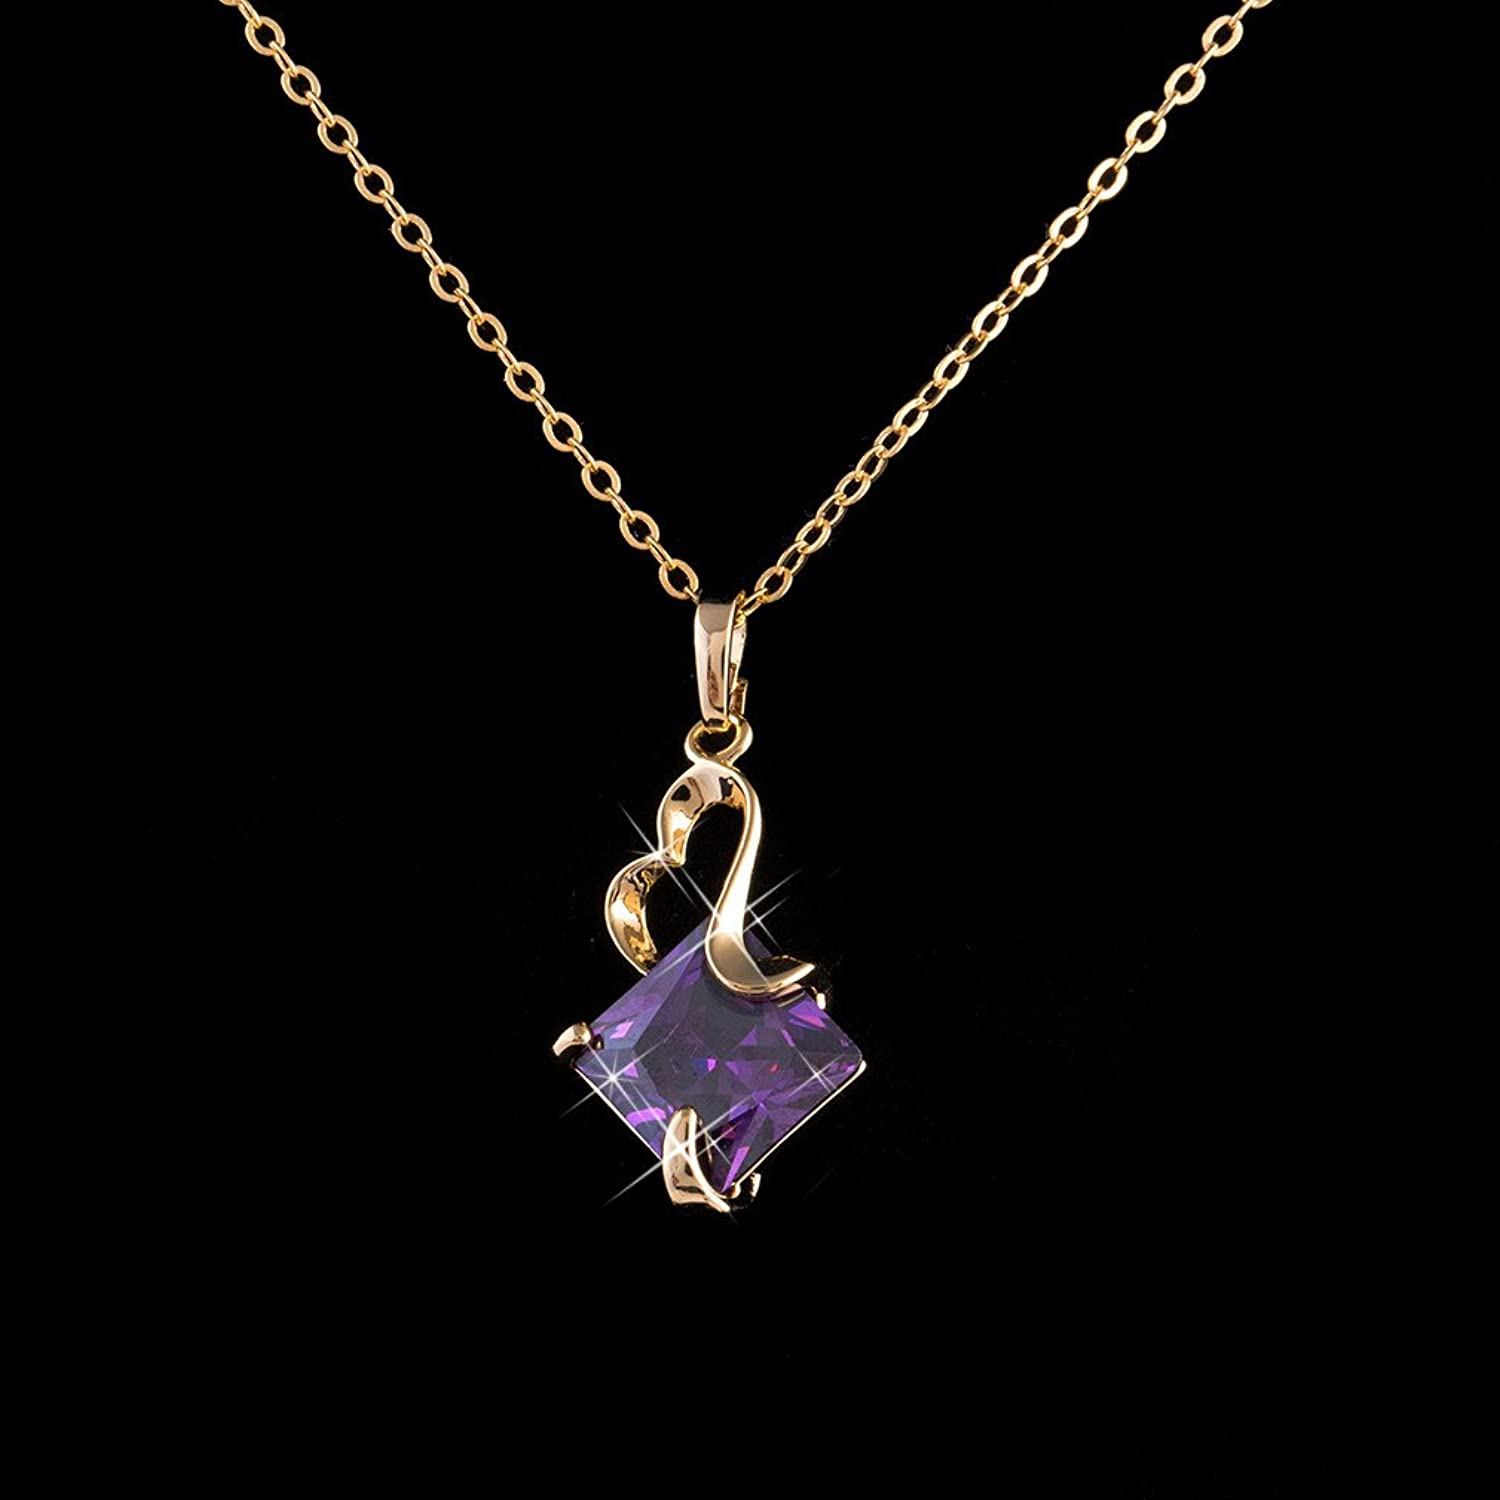 Yazilind Women's Alloy Crystal Square Pendant Necklace Jewelry Party Supplies JPBf4yZ6J